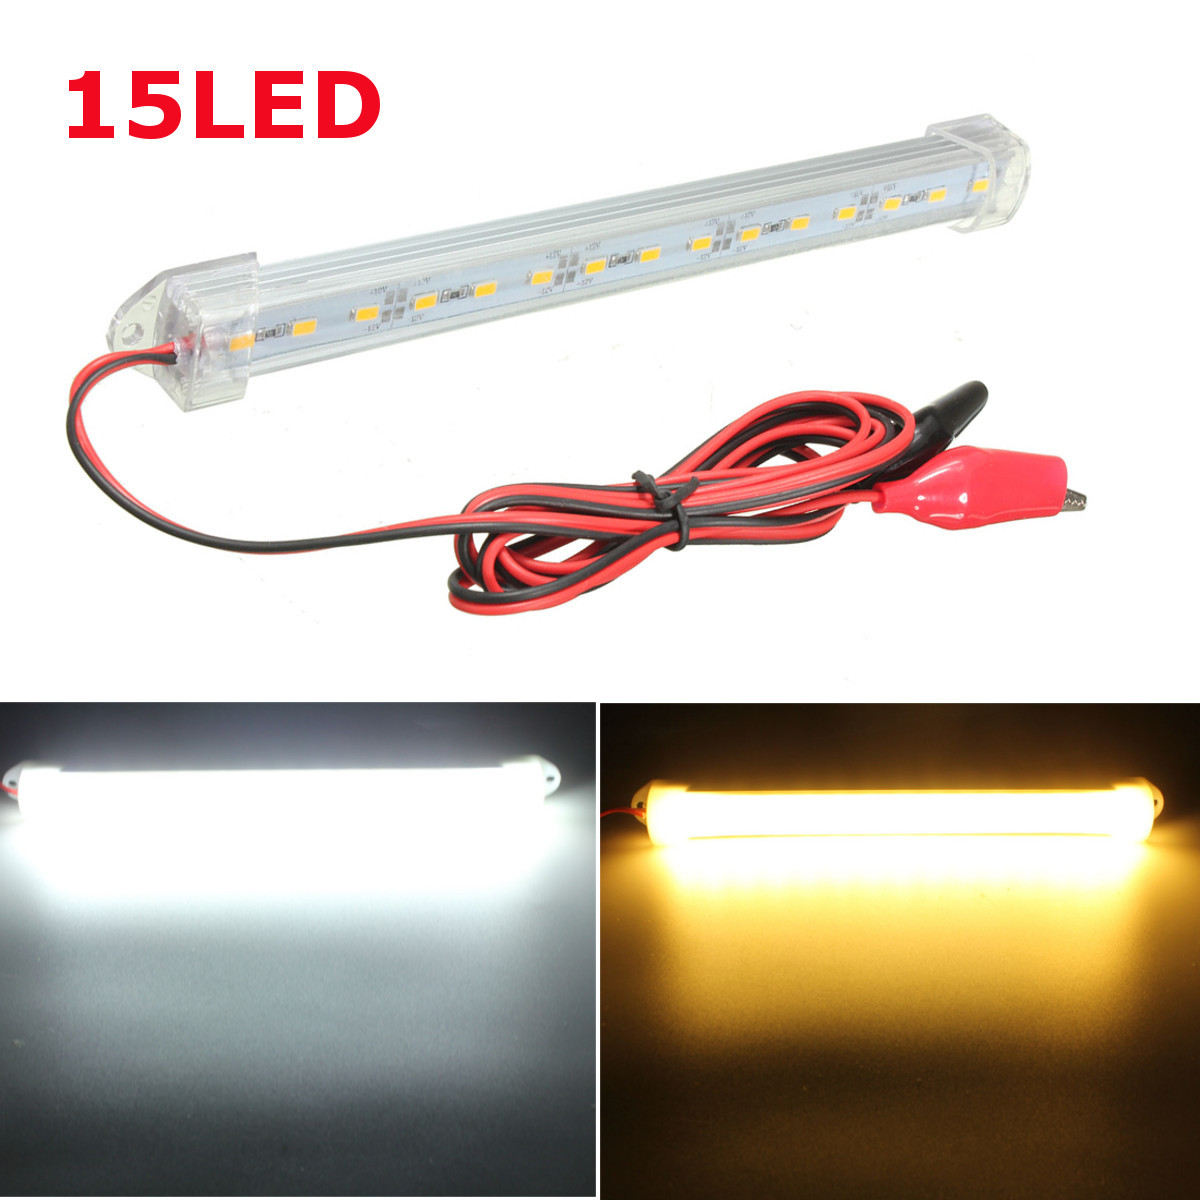 Newest 150cm 12V LED Car Interior Light Bar Tube Strip Lamp Van Boat  Caravan Motorhome Truck